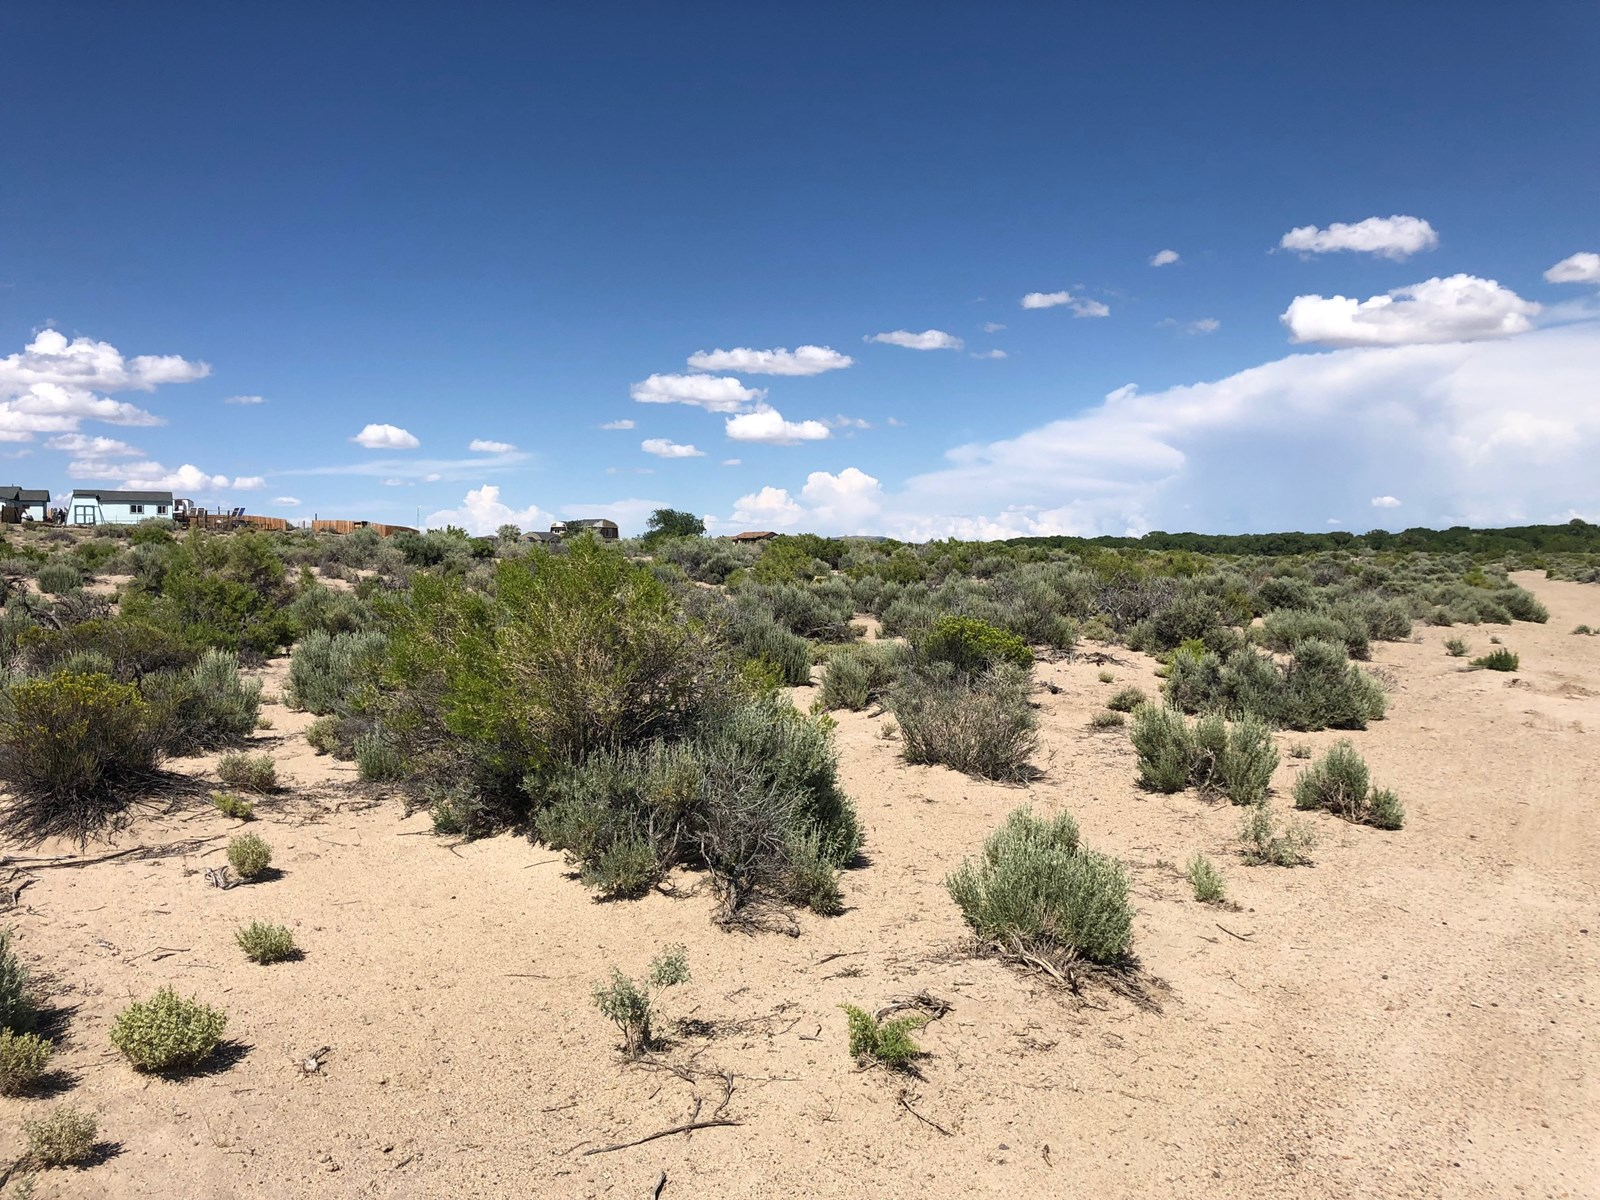 Land near Lahontan Lake for sale in NW Nevada, 1+ acre